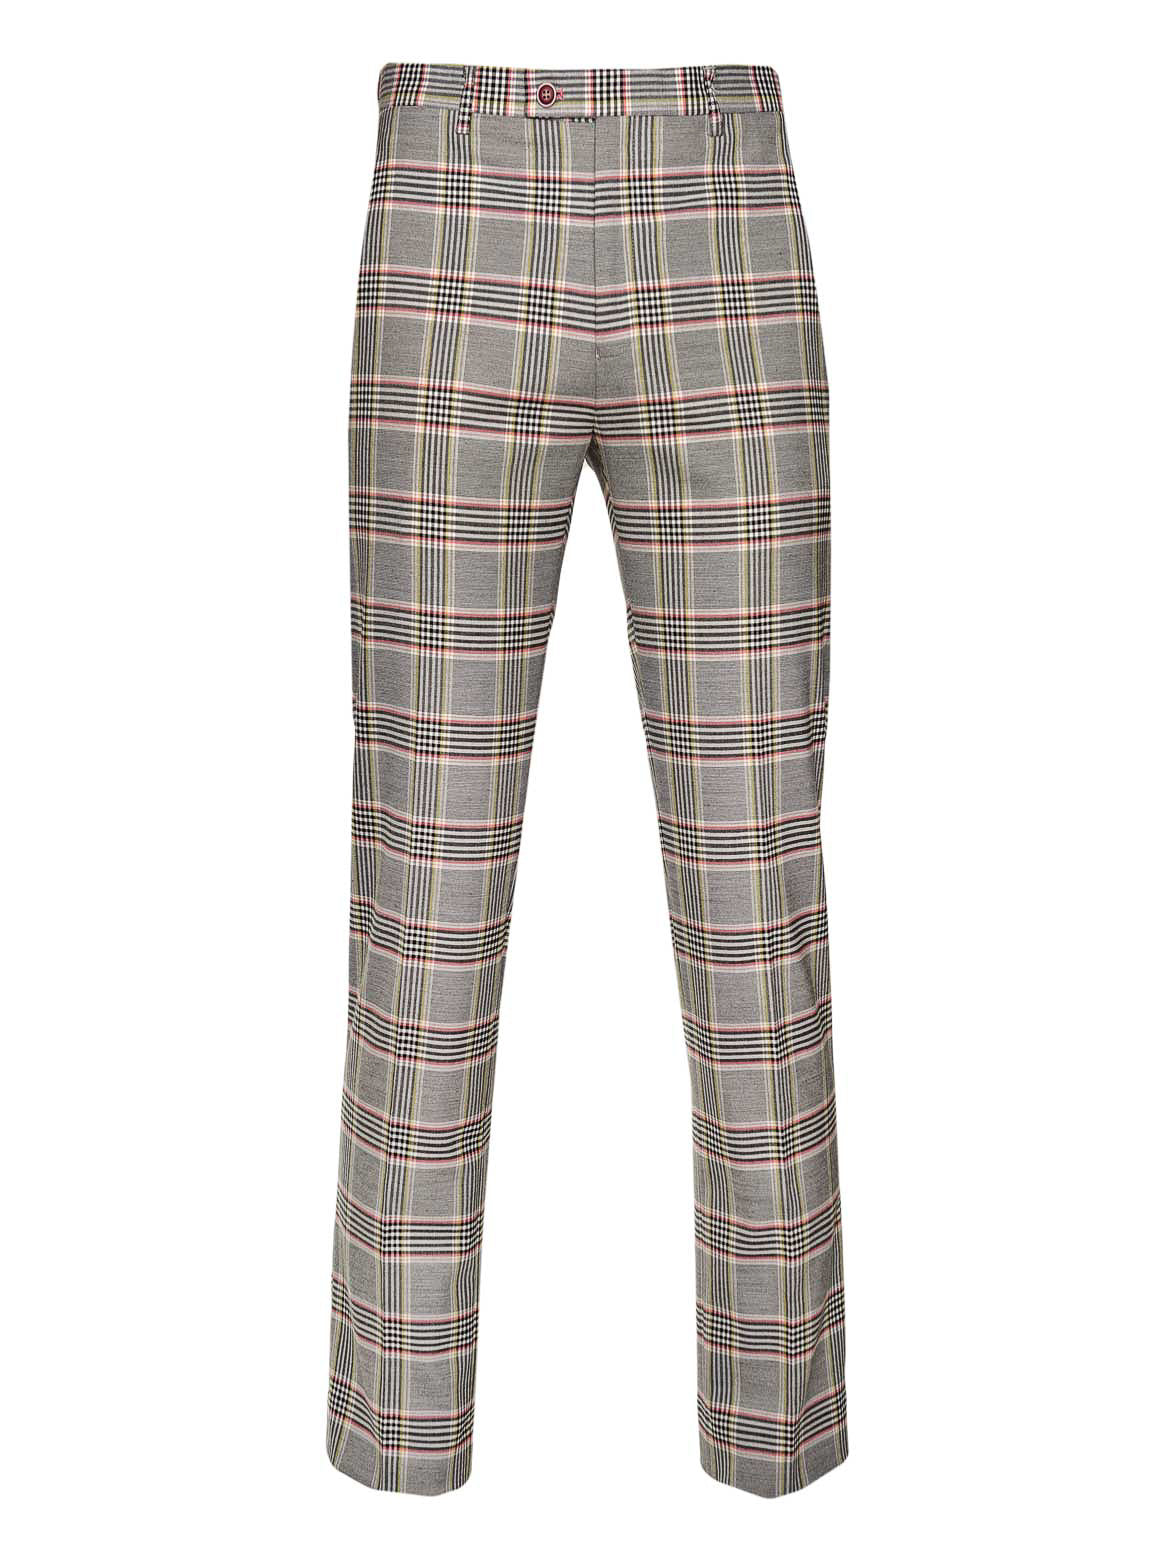 Downing Pants  - Pink Yellow Plaid